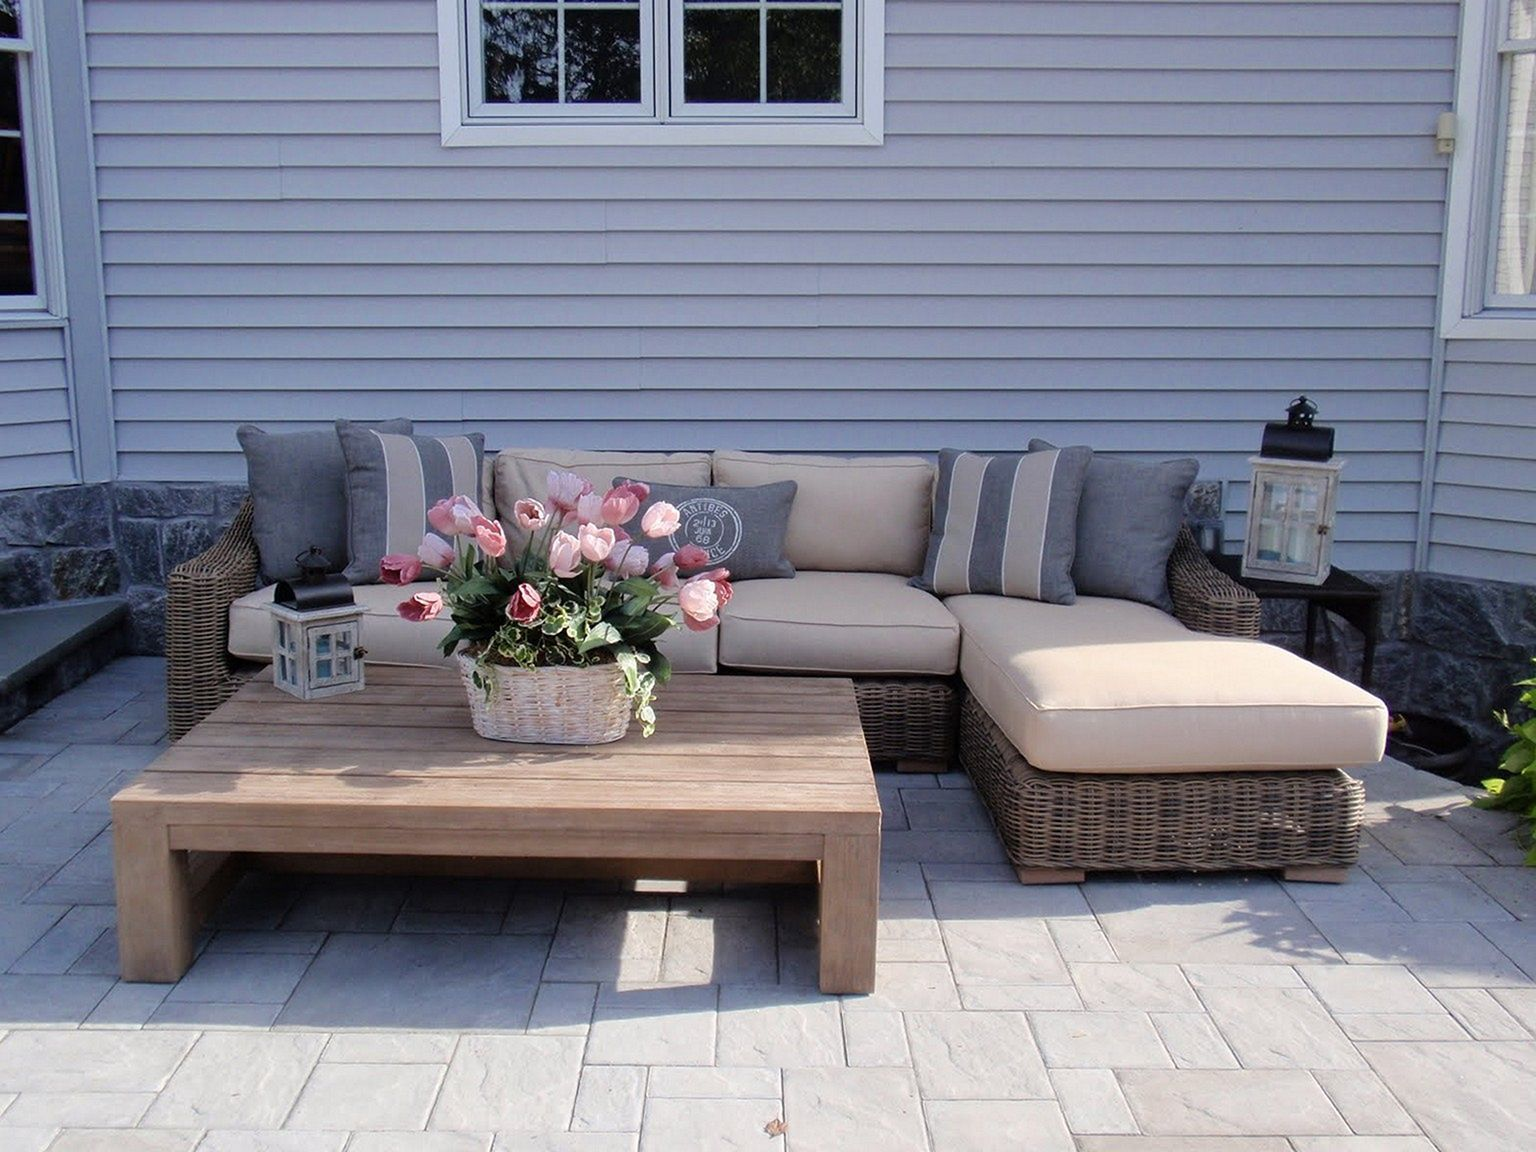 Top 20 Awesome Outdoor Furniture Ideas Rustic Outdoor Coffee Tables Diy Patio Diy Outdoor Furniture